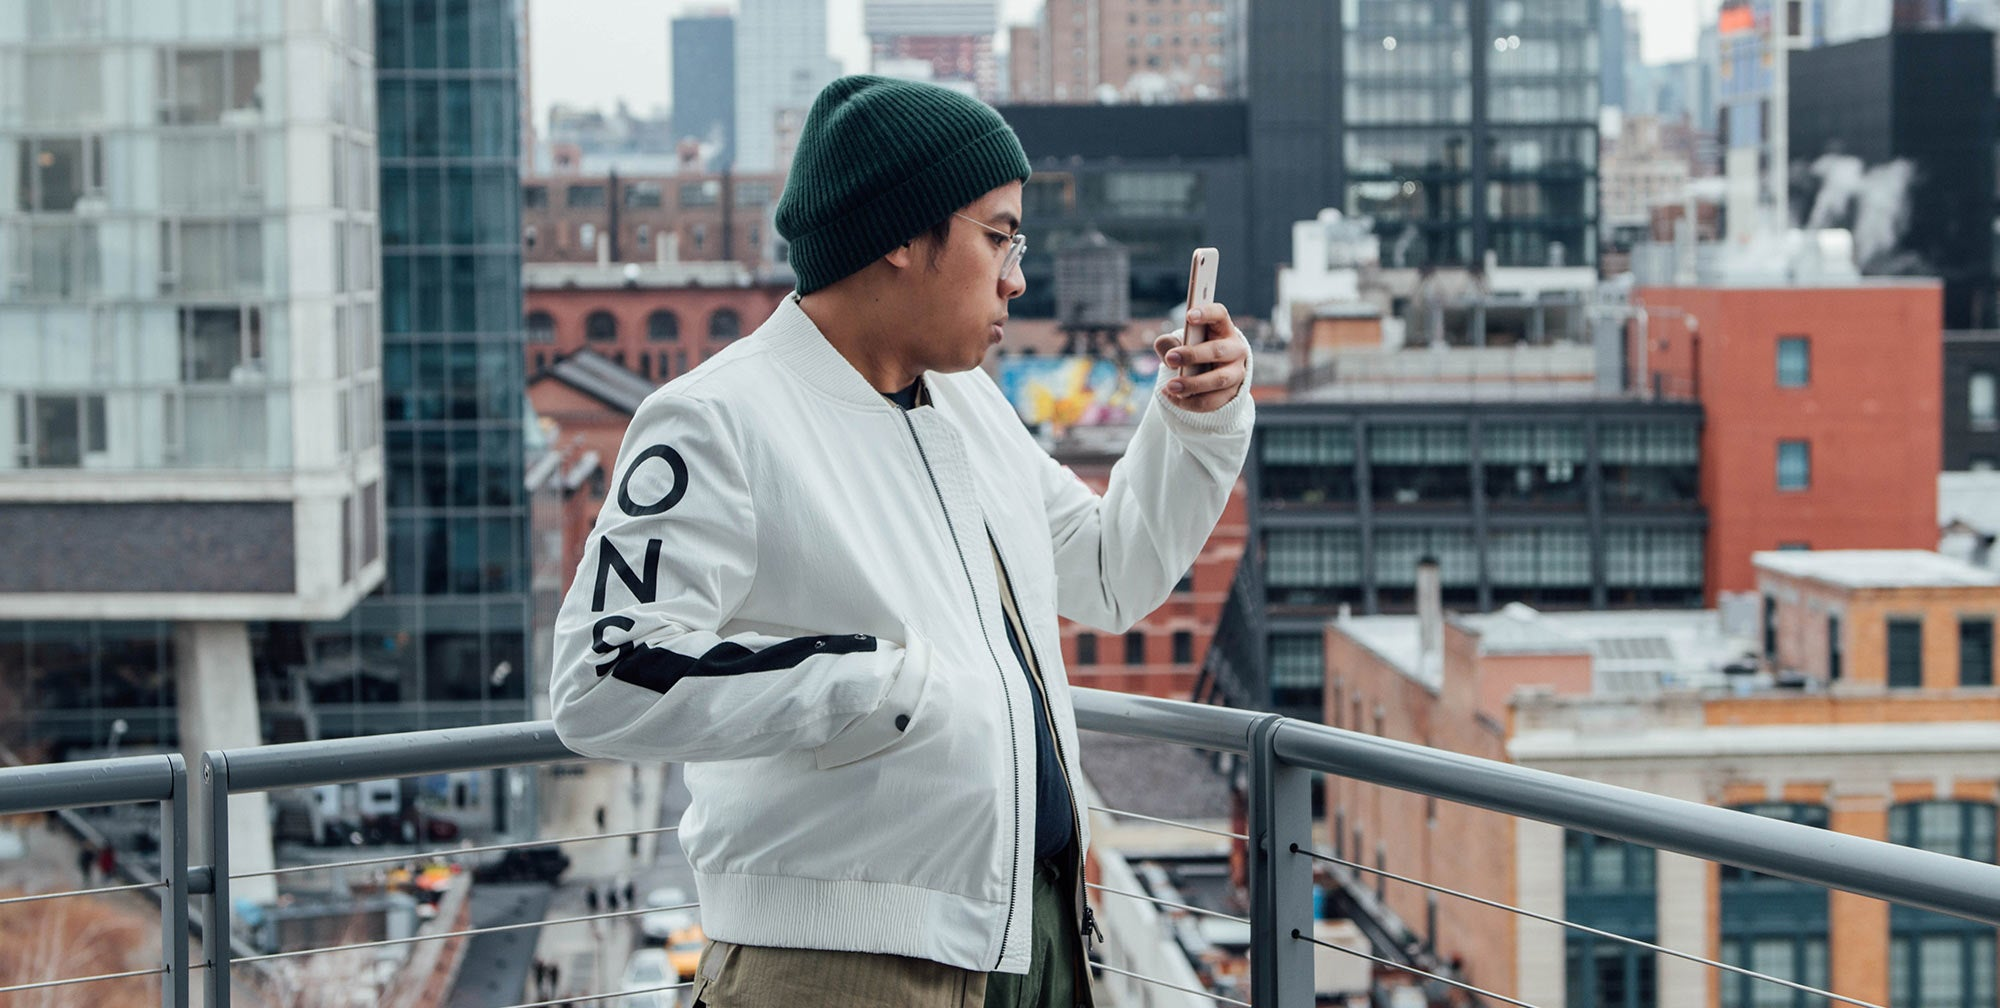 Highsnobiety Editorial Director Jian DeLeon for A Day in The Life Series - ONS Clothing Urban Transplants